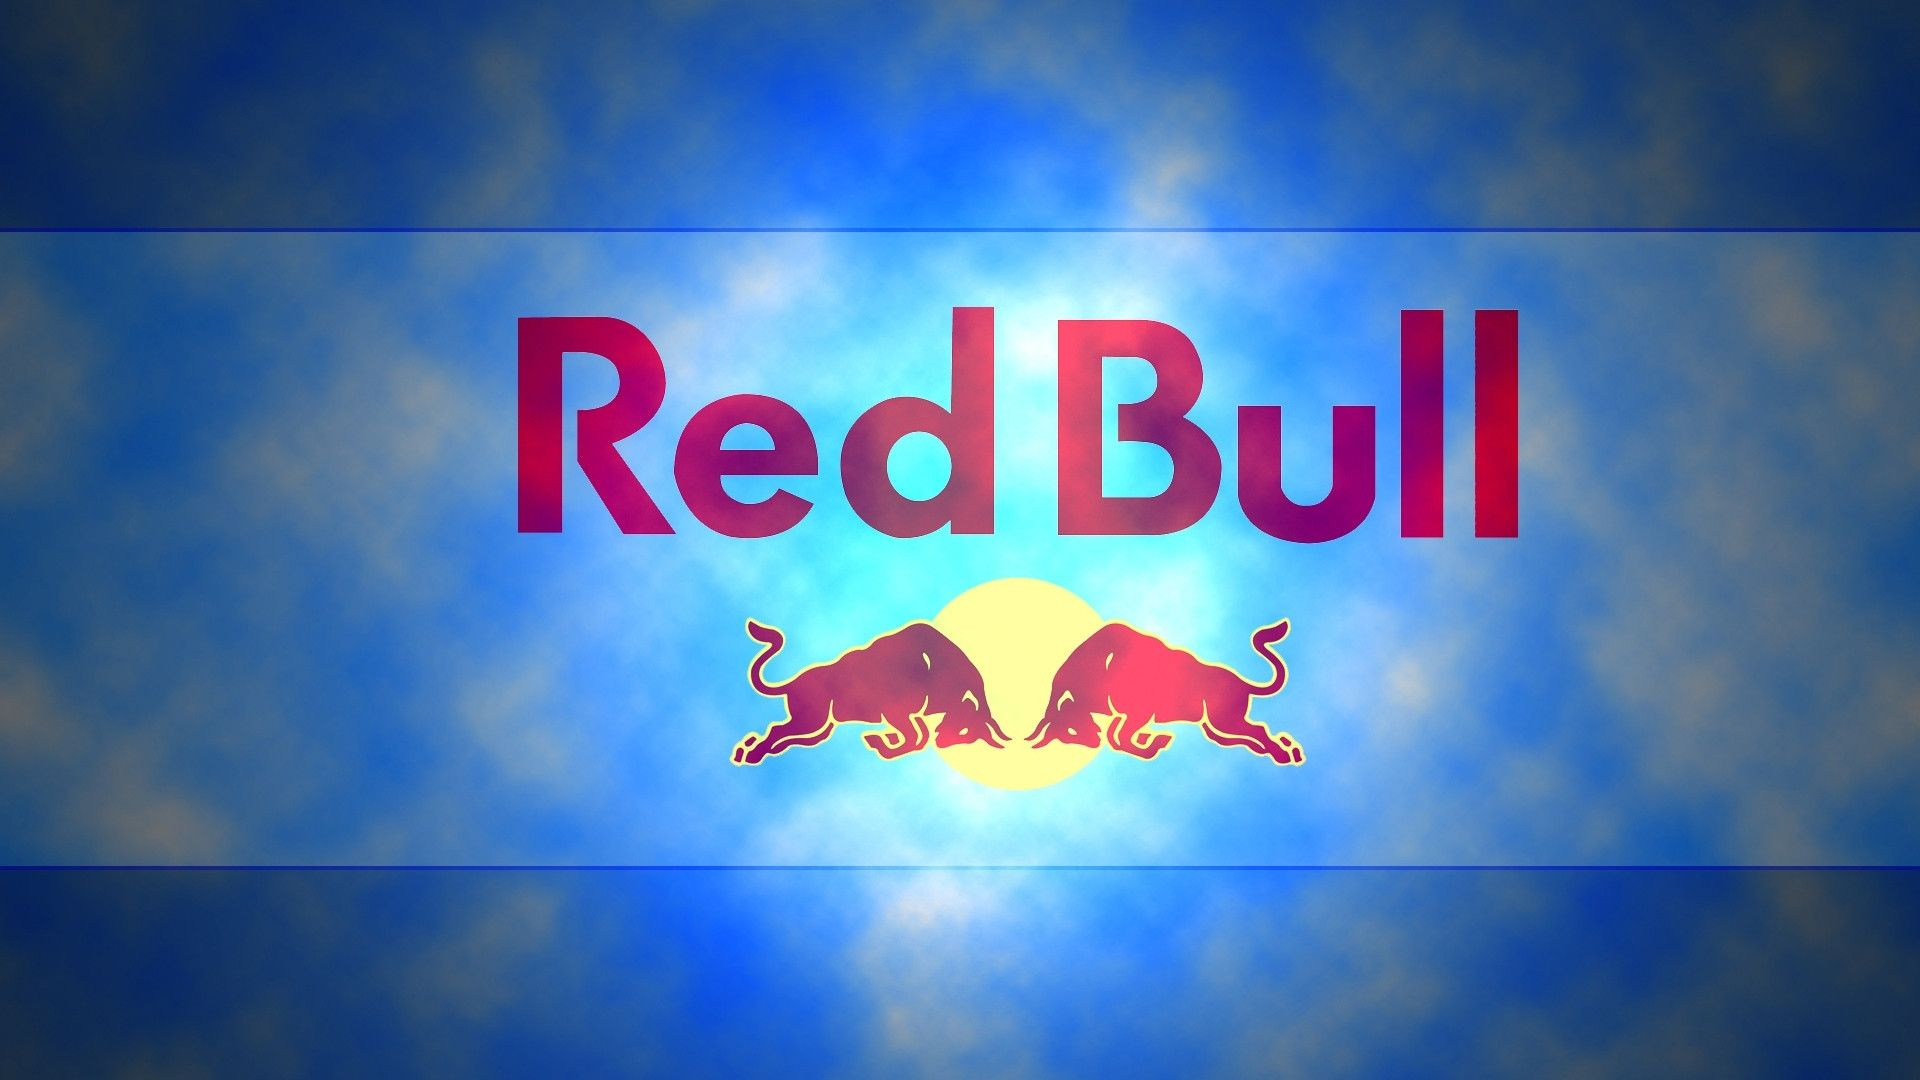 red bull background